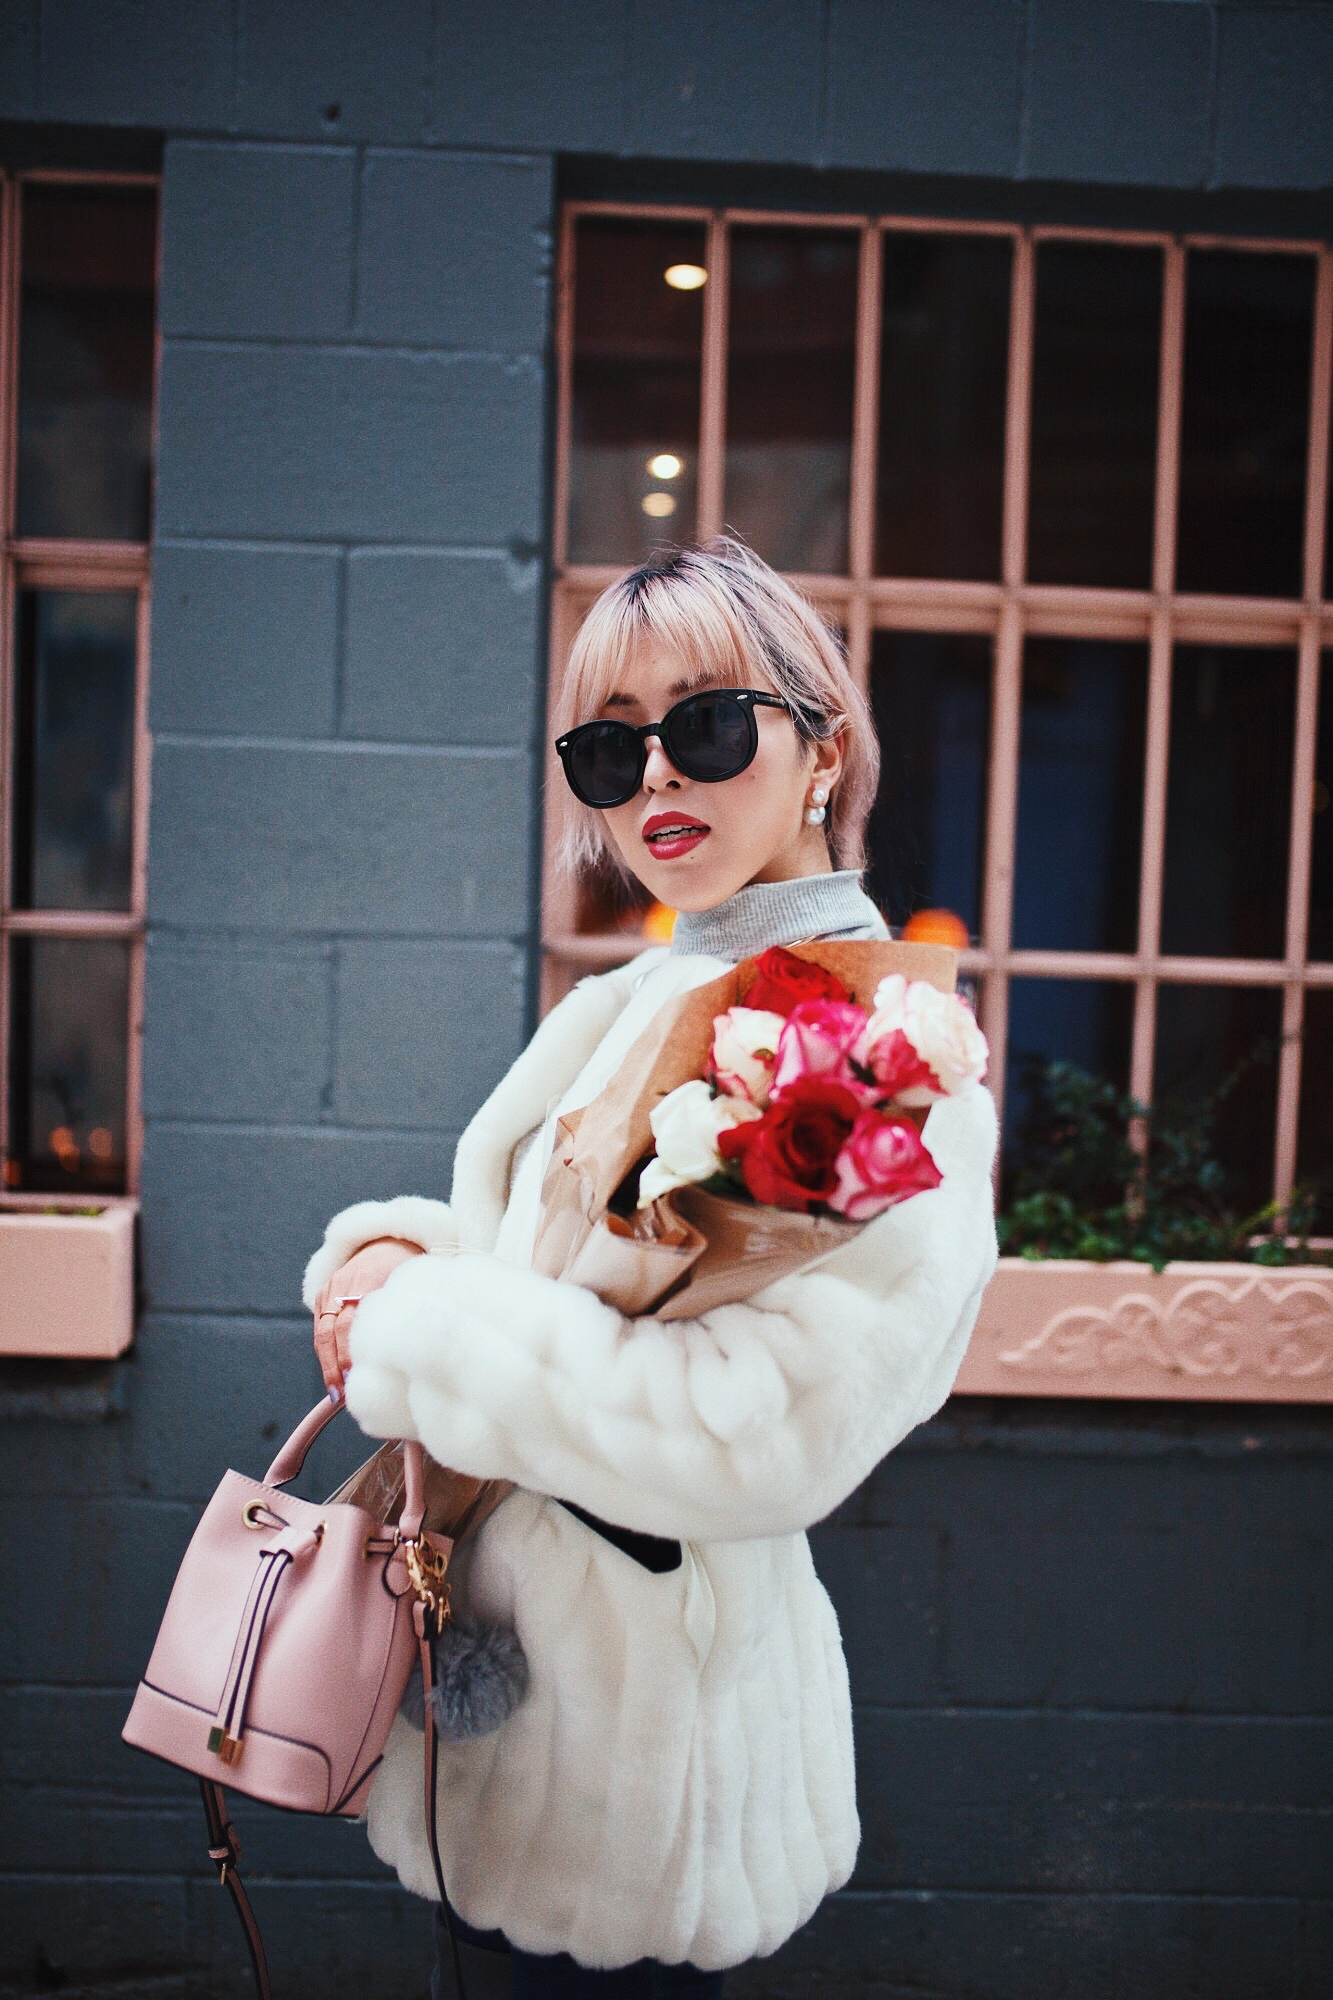 H&M Gray Turtleneck Sweater-ASOS high waisted skinny jean-EGO Grey Over the Knee Boots-While Faux Fur Coat-Forever 21 Pearl Belt & Pink Mini Basket Bag-Chanel Ribbon Hair-Valentine's Day-Rose bouquet-Pink Hair-Japanese-Seattle Style Fashion Blogger-AikA's Love Closet 18